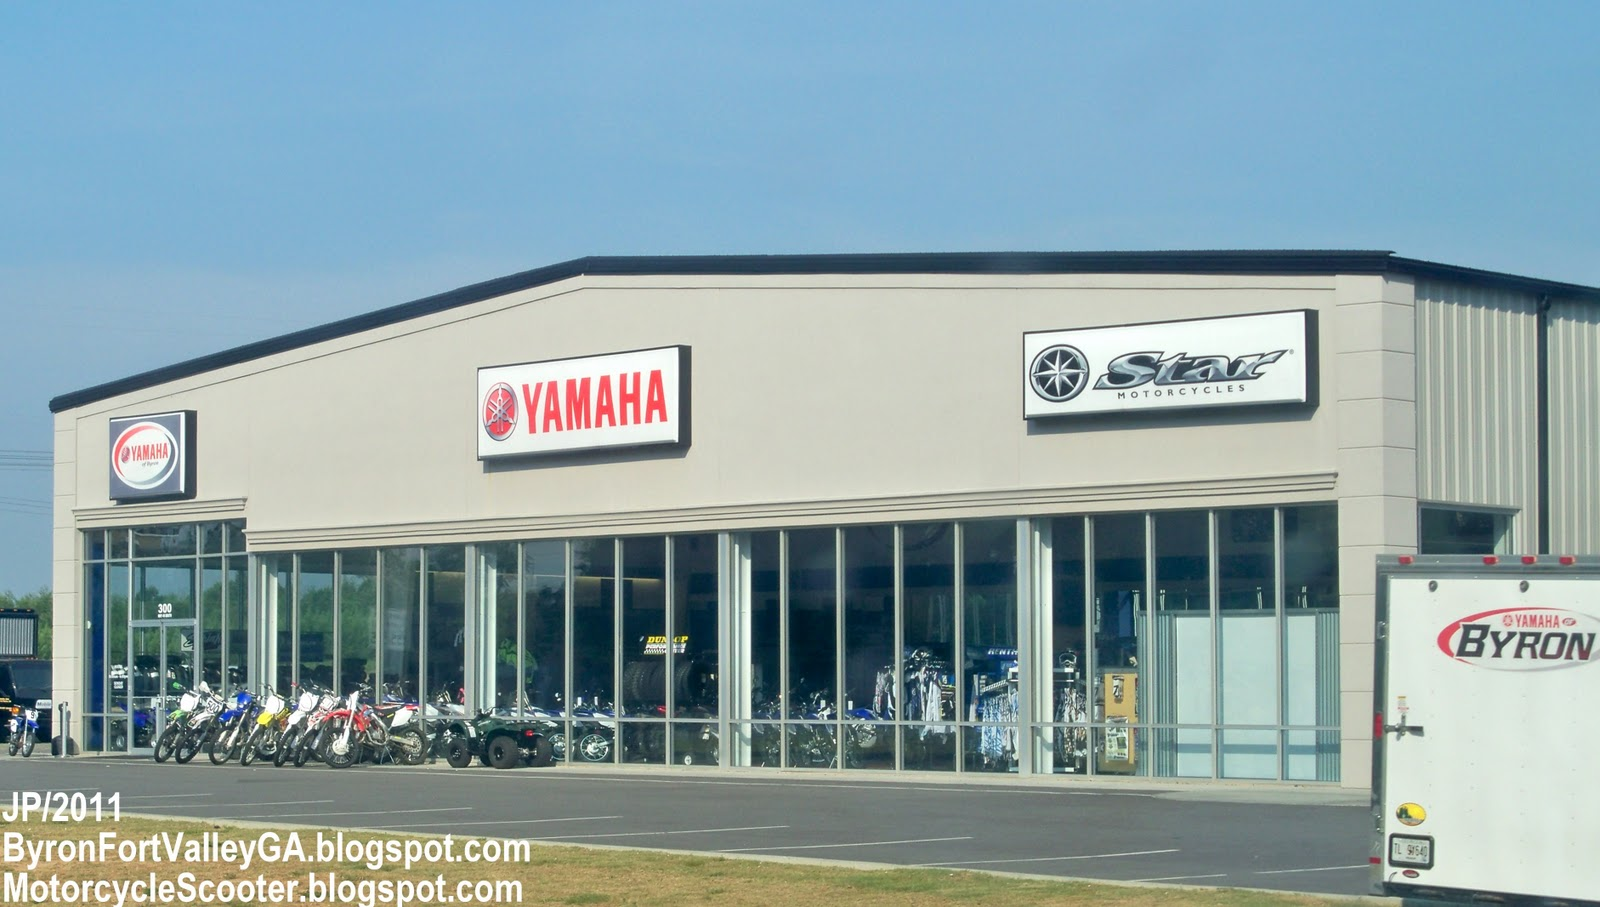 U haul self storage used motorcycle dealers near me for Yamaha outboard dealers near me